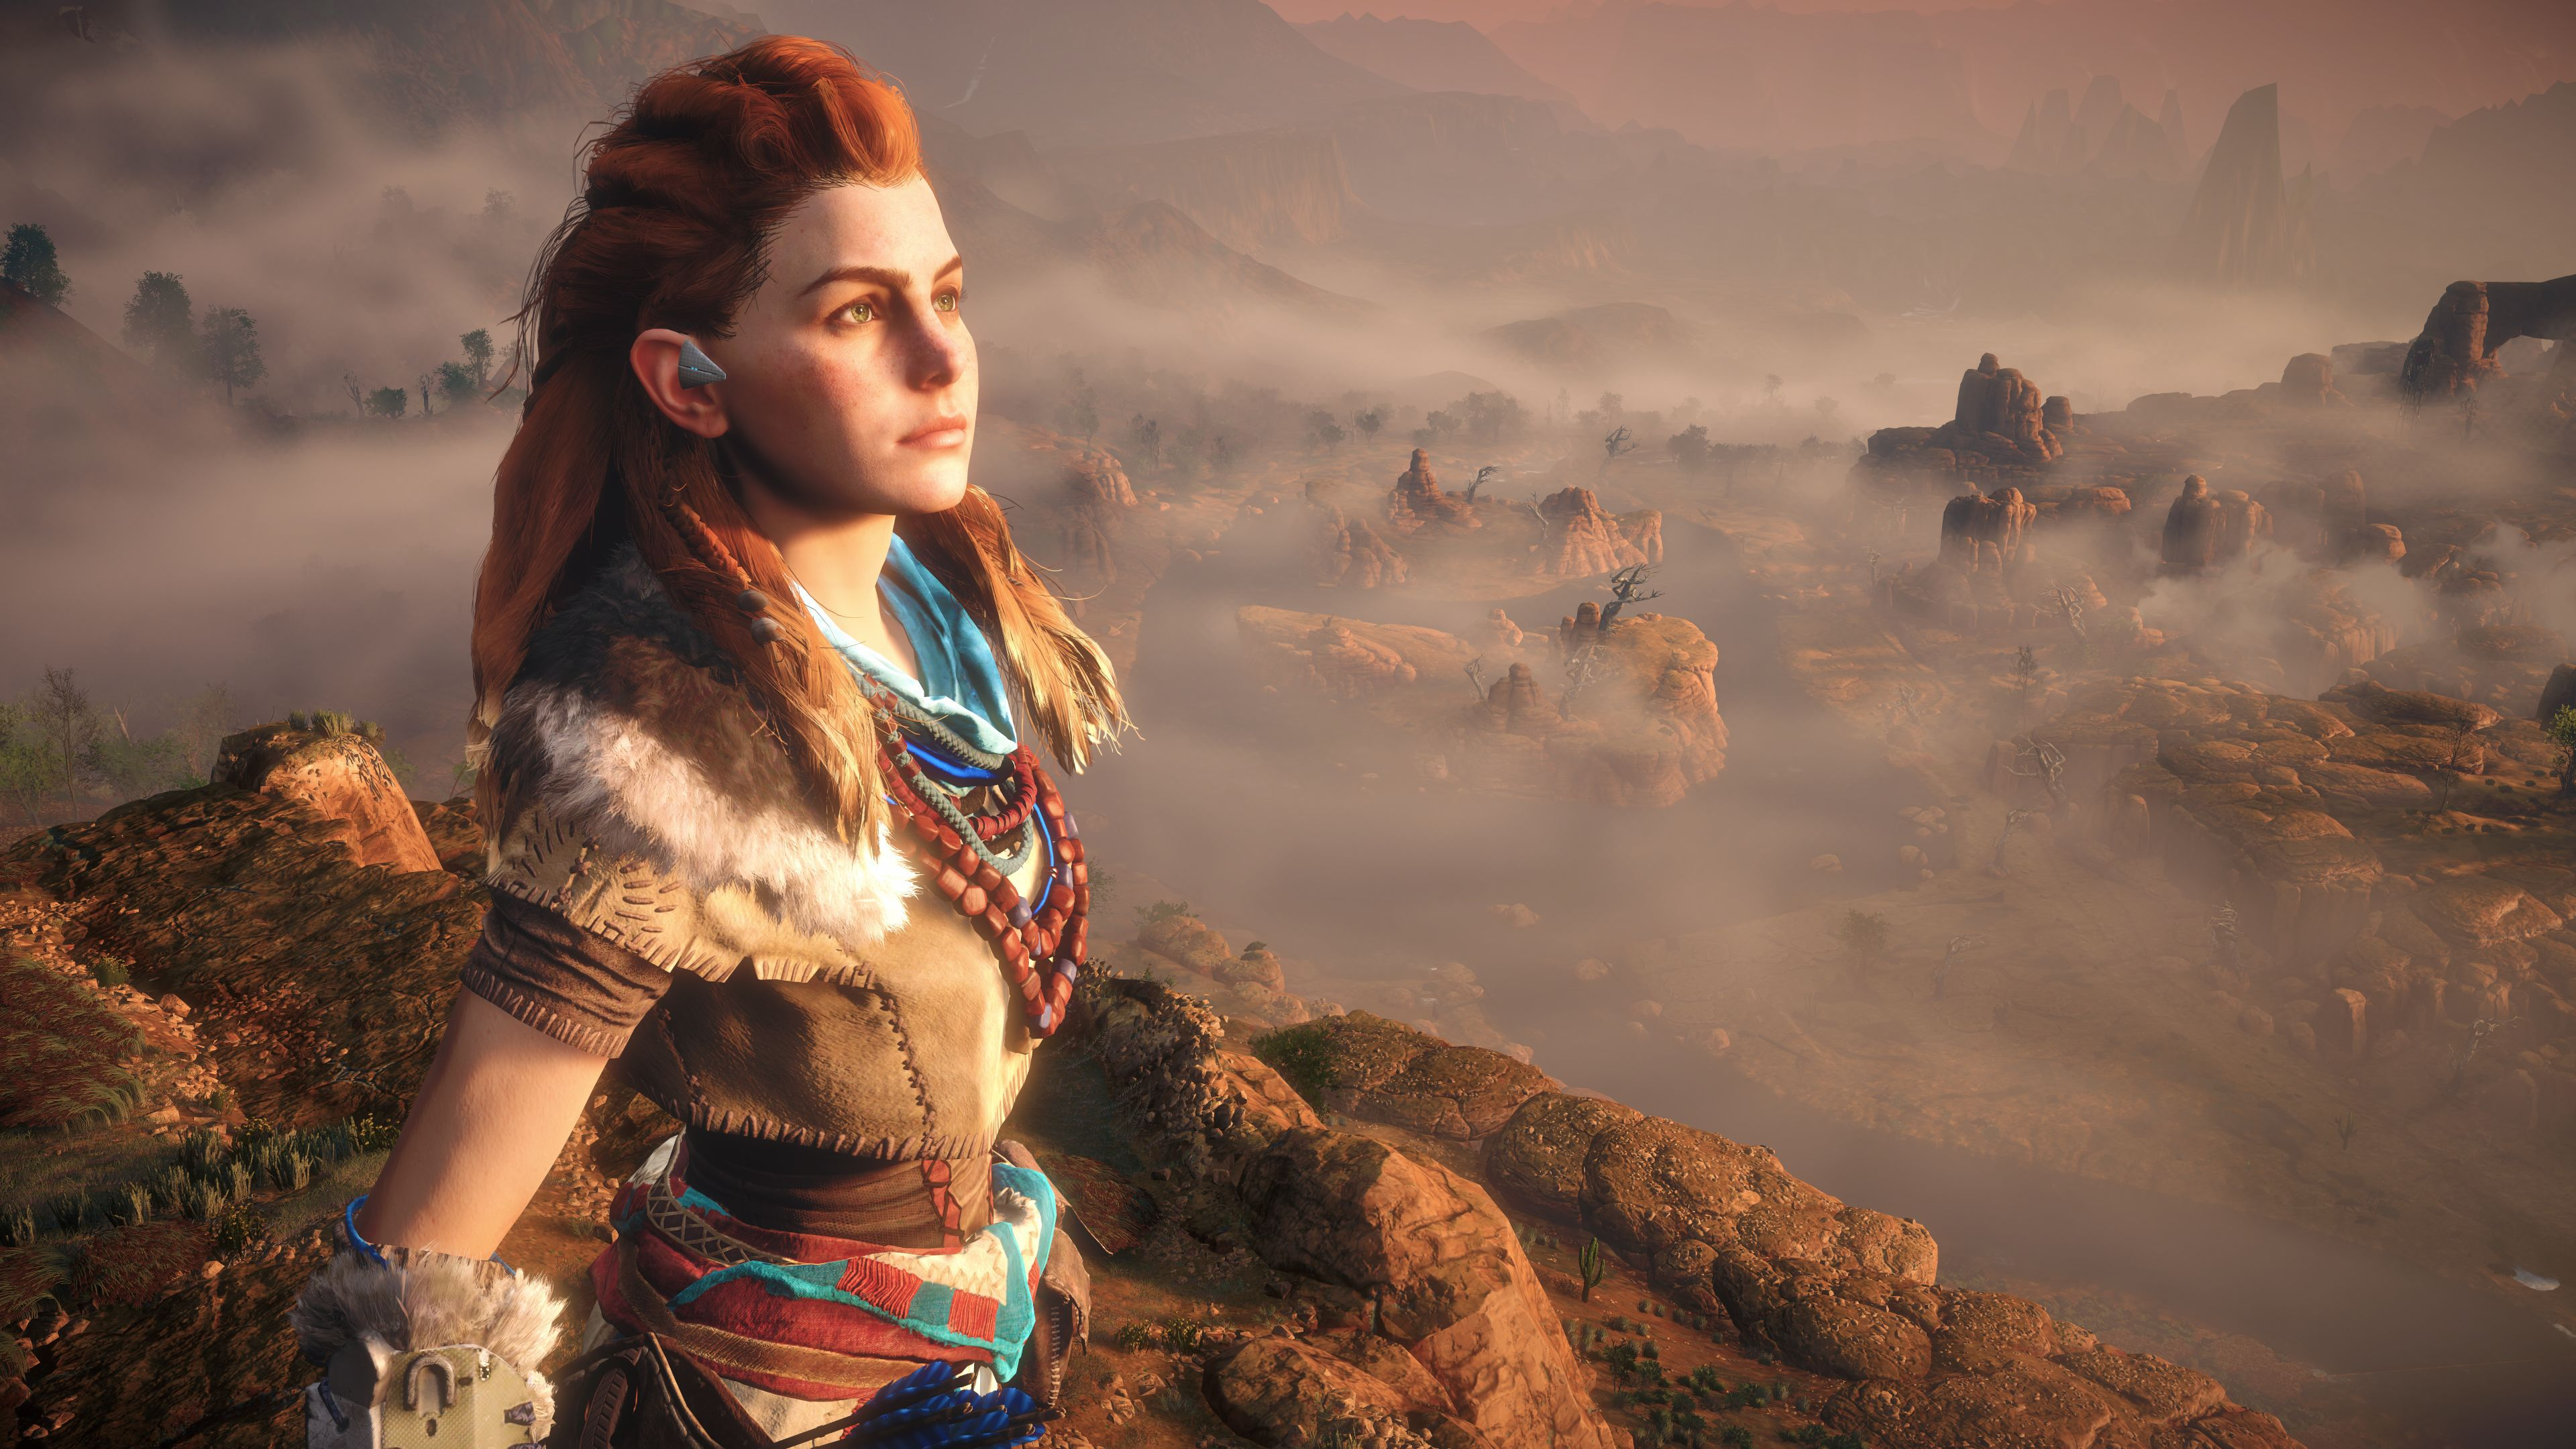 Horizon zero dawn wallpapers images photos pictures - Horizon zero dawn android wallpaper ...